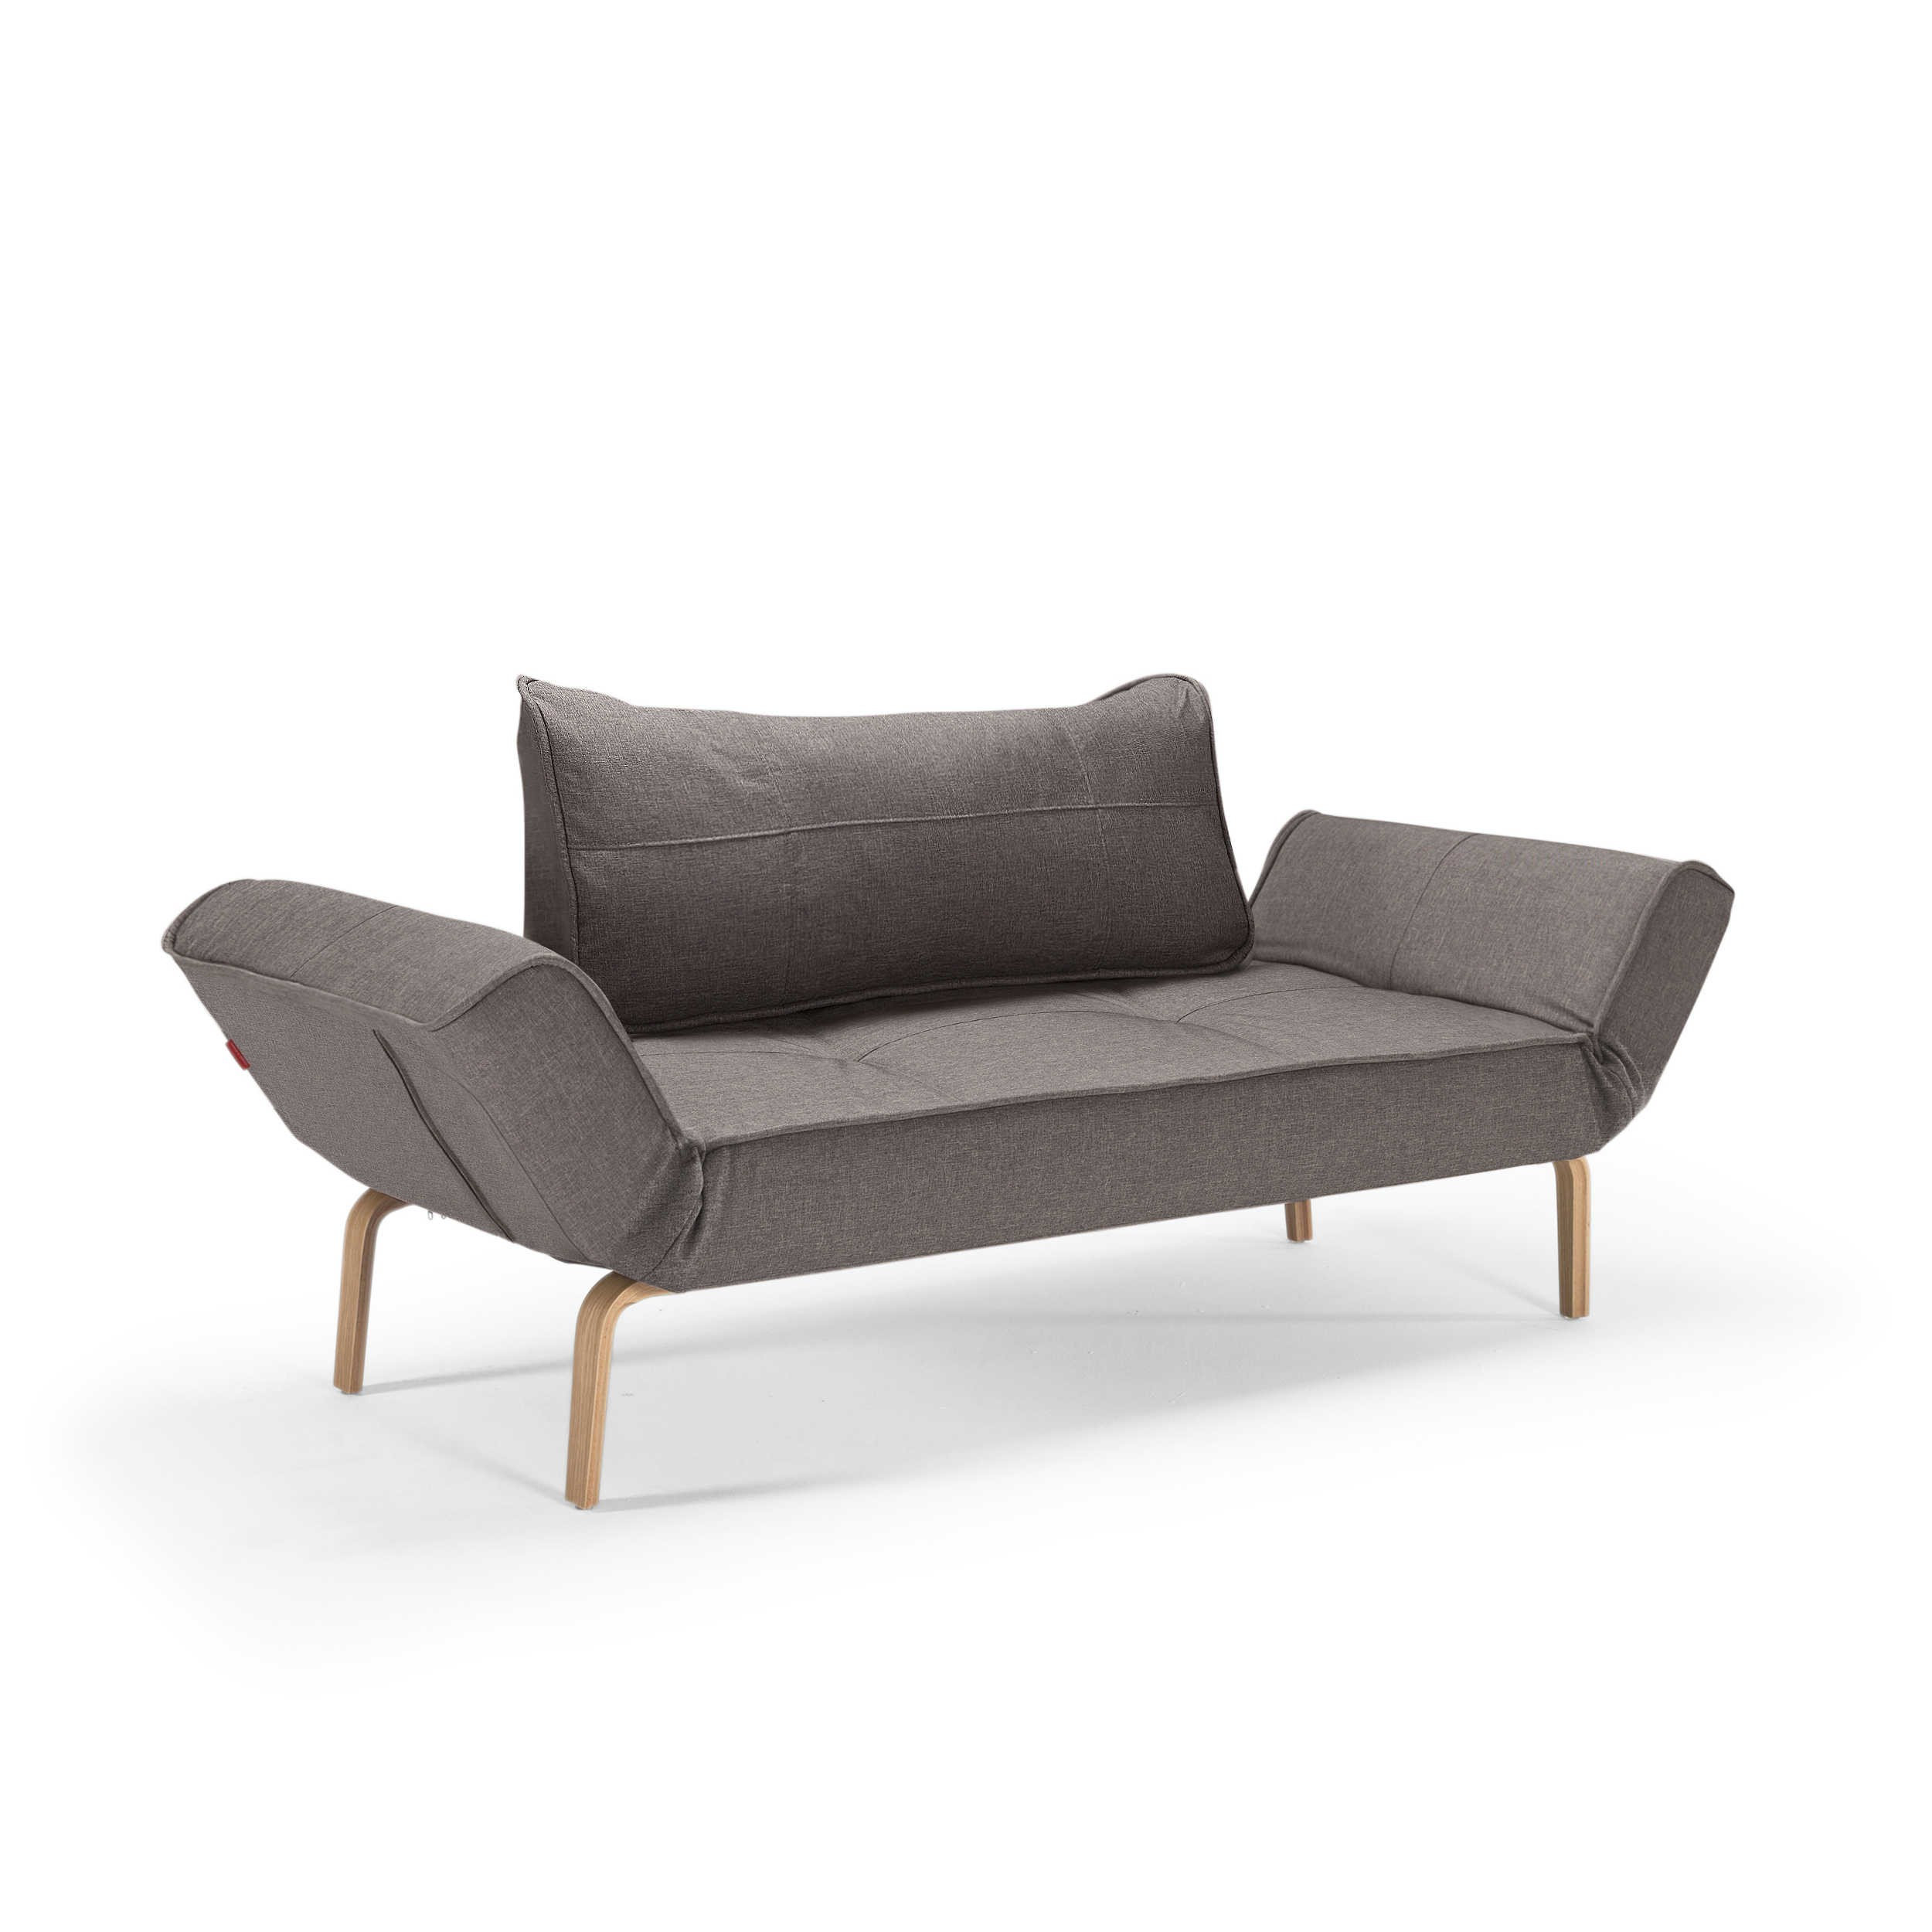 Innovation Schlafsofa Innovation Schlafsofa Zeal Bow Anthrazit Stoff Online